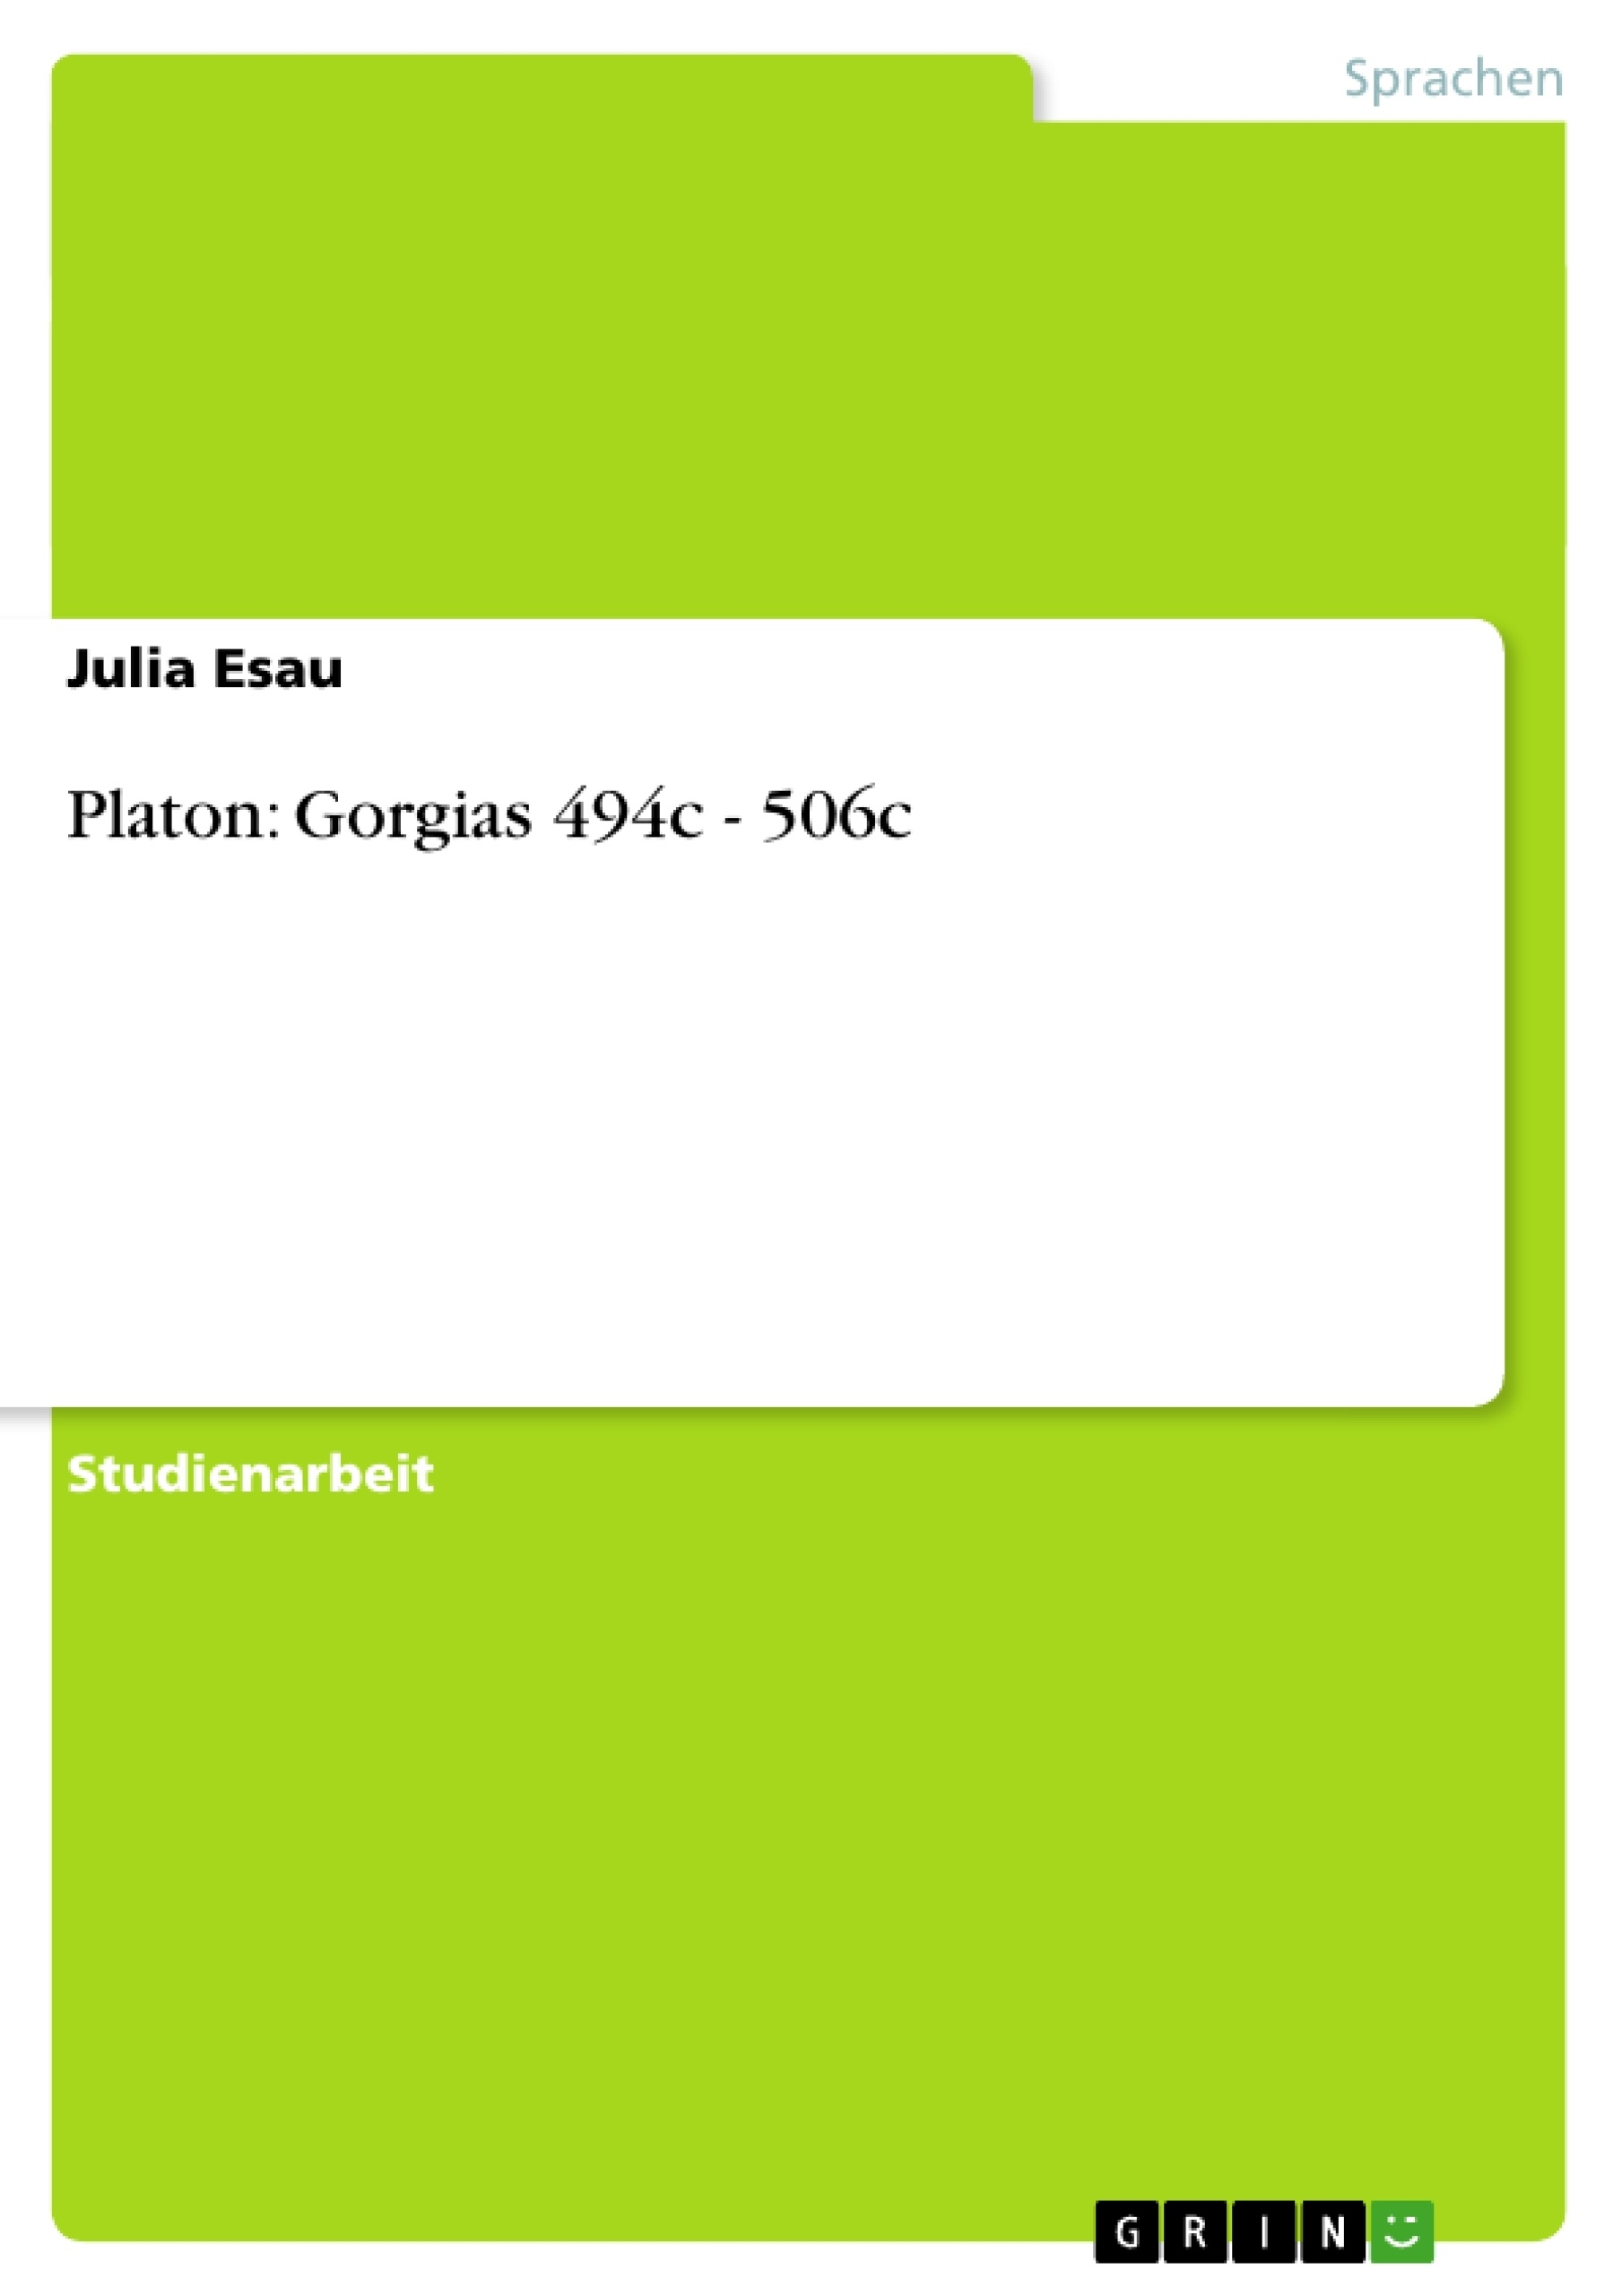 Titel: Platon: Gorgias 494c - 506c